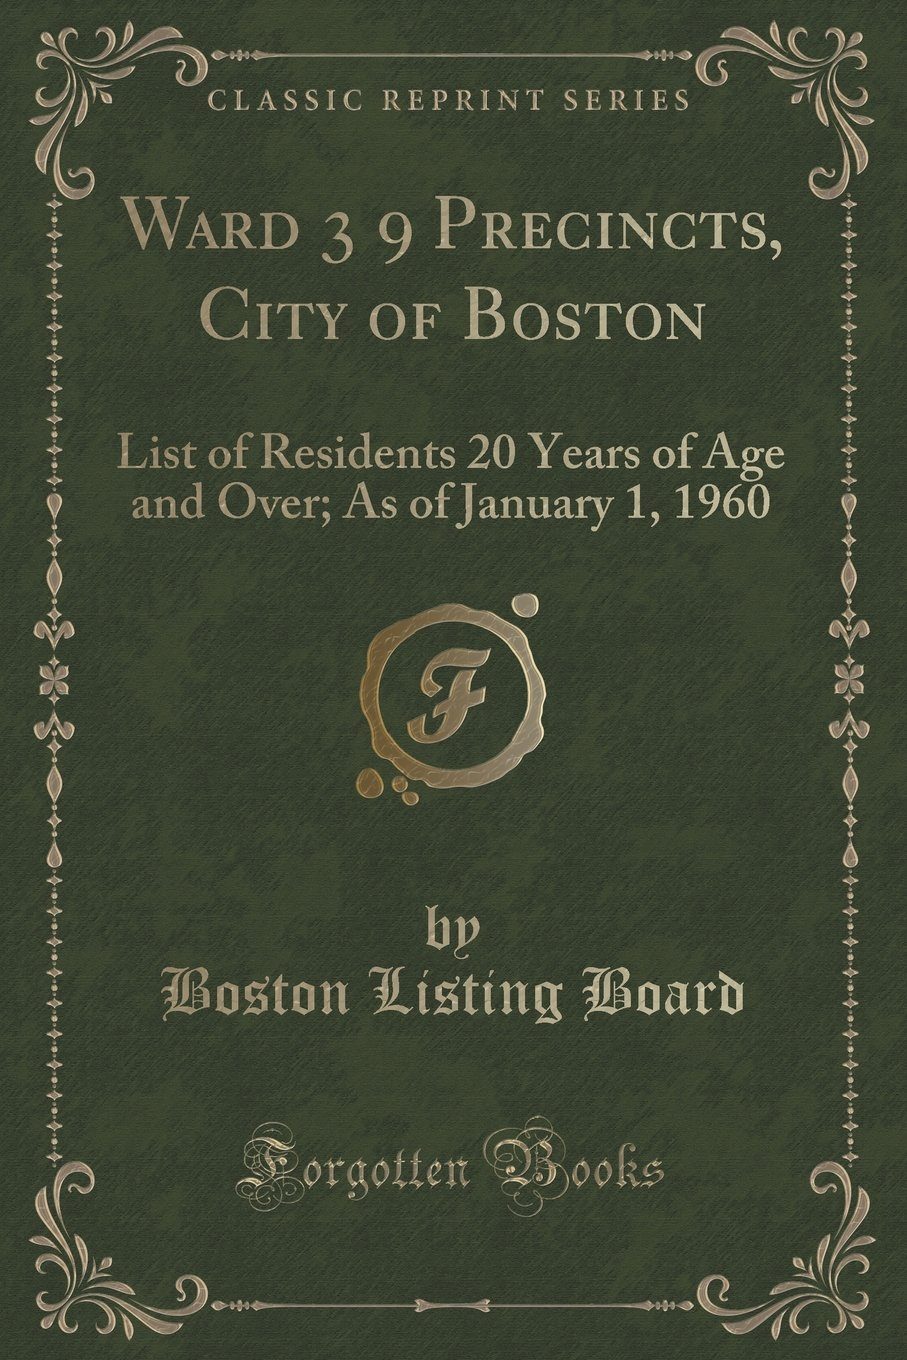 Ward 3 9 Precincts, City of Boston: List of Residents 20 Years of Age and Over; As of January 1, 1960 (Classic Reprint) pdf epub